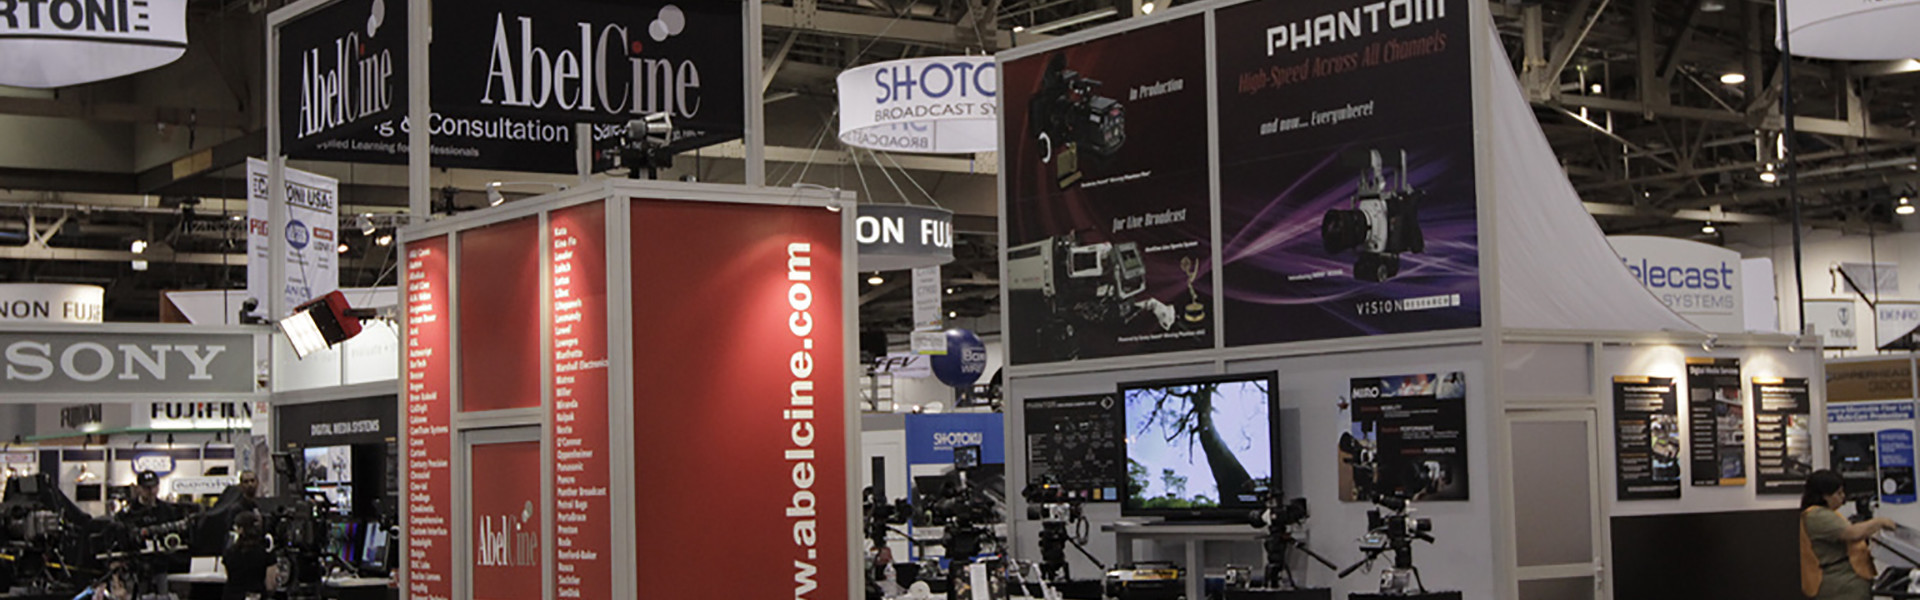 Header image for article NAB '12: Zeiss Announces New Compact Zoom